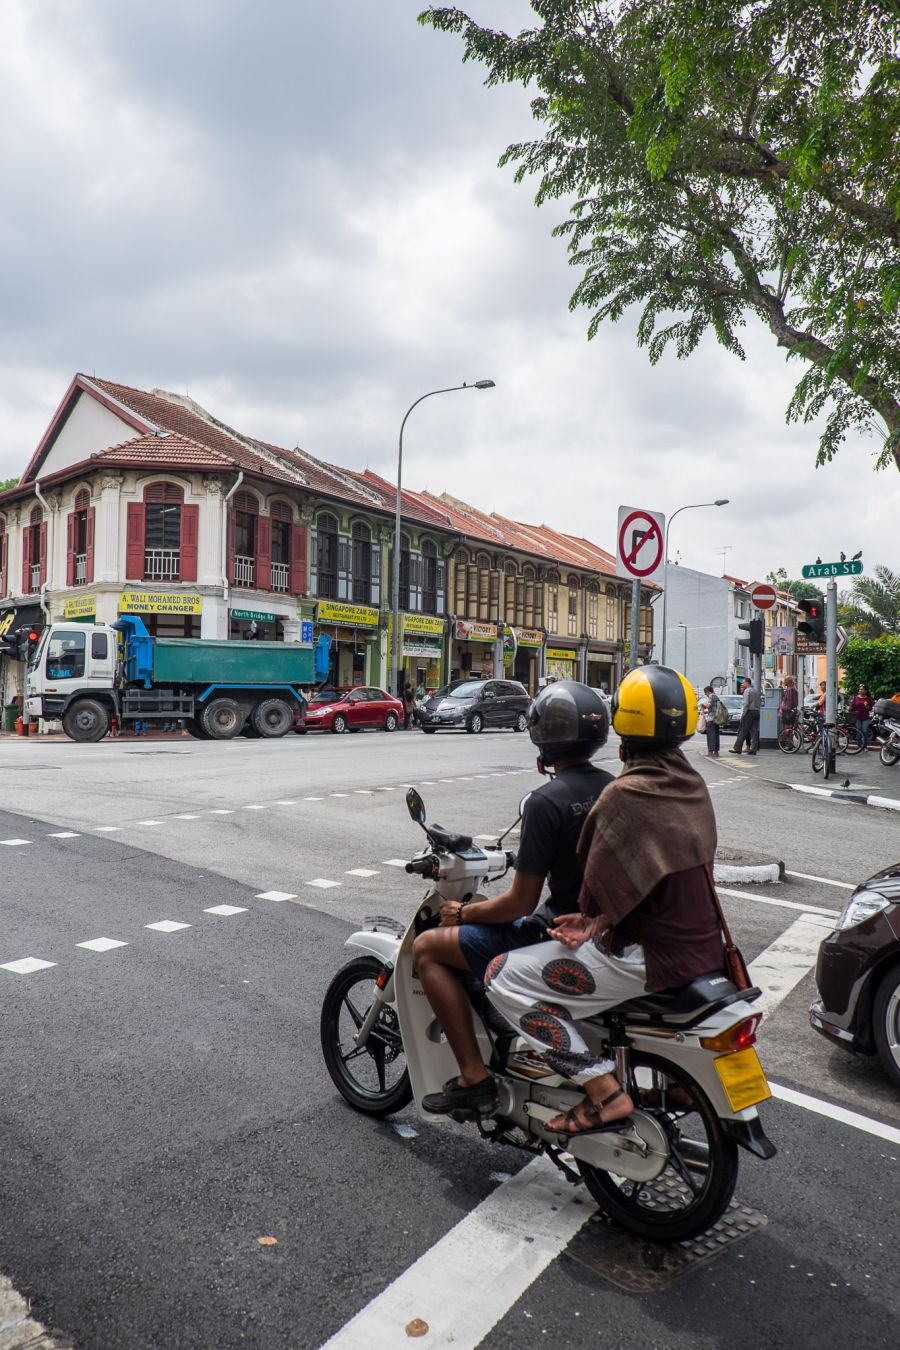 We walked along Arab Street and crossed at these traffic lights many times during our stay